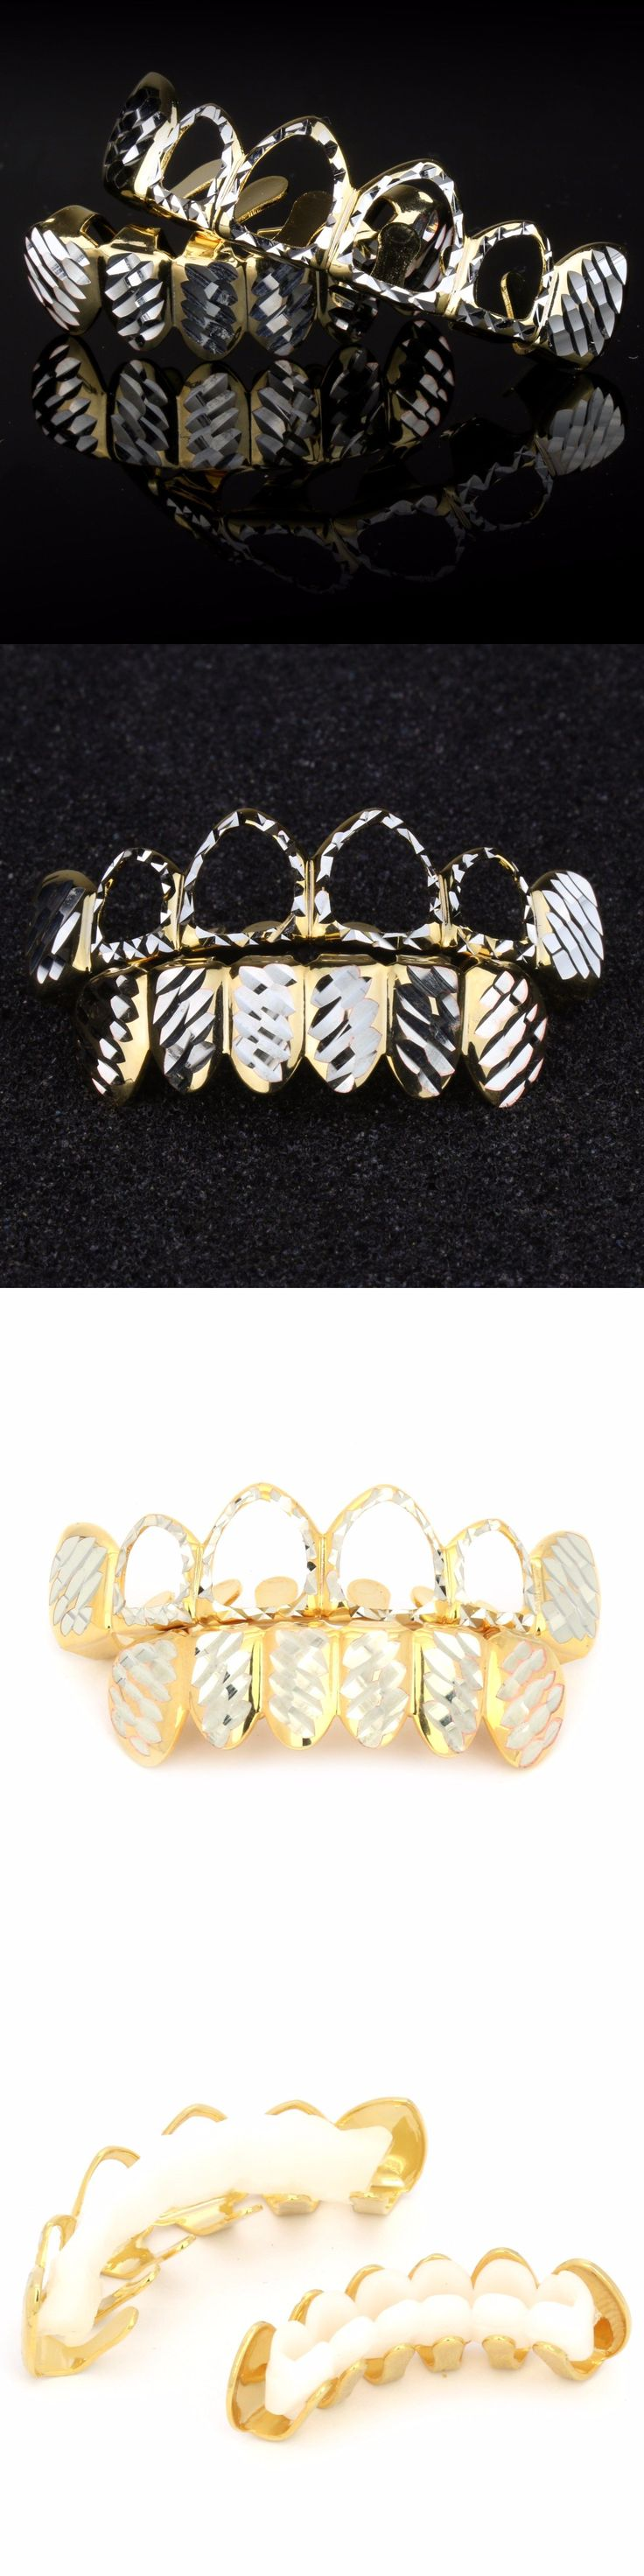 Grillz Dental Grills 152808: 14K Gold And Silver Plated Diamond Cut Hollow Top And Bottom Teeth Hip Hop Grillz BUY IT NOW ONLY: $250.0